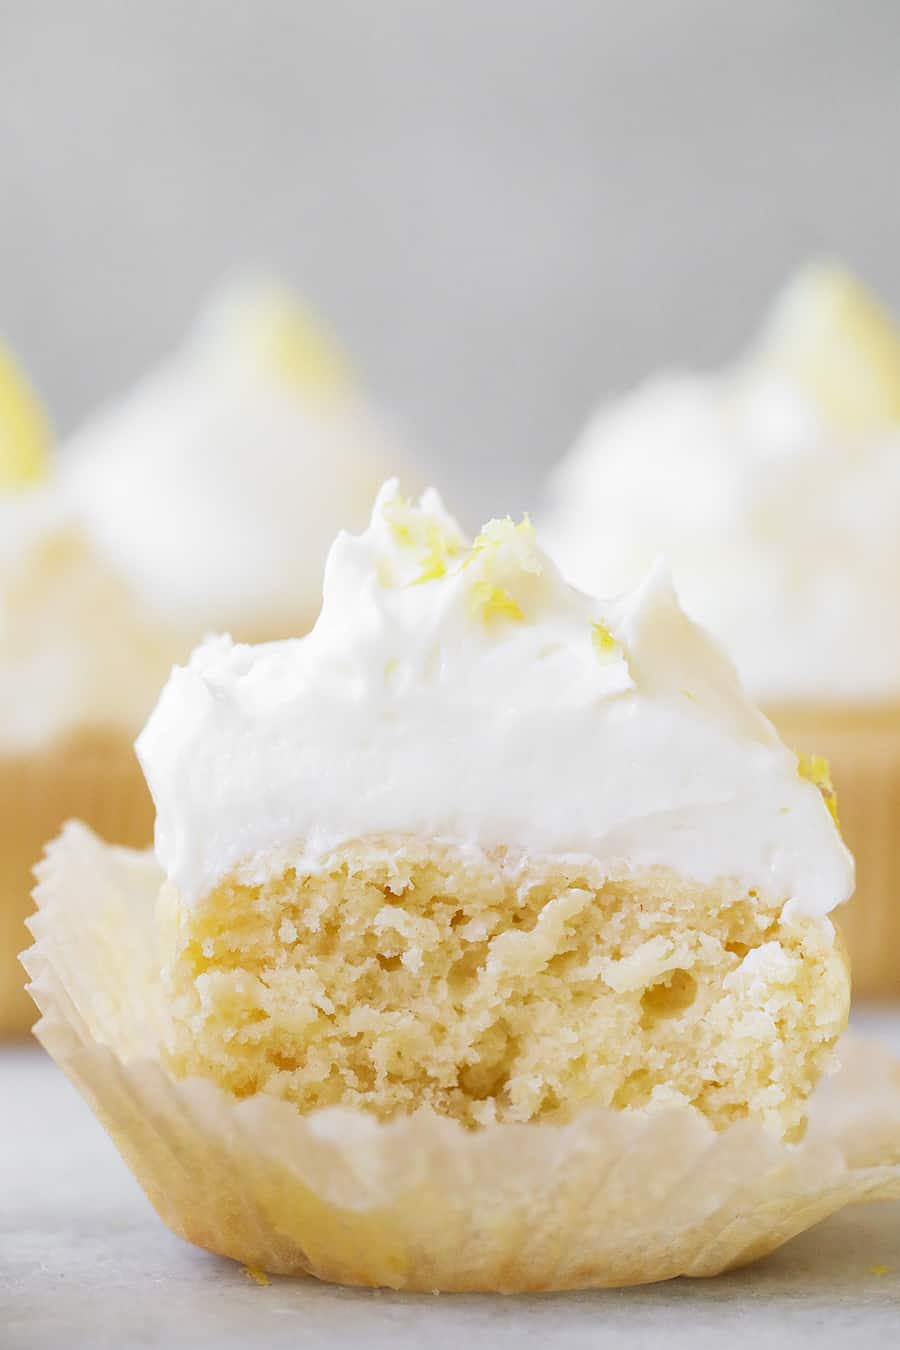 Lemon Cupcakes with Buttercream Meringue Frosting cut in half.